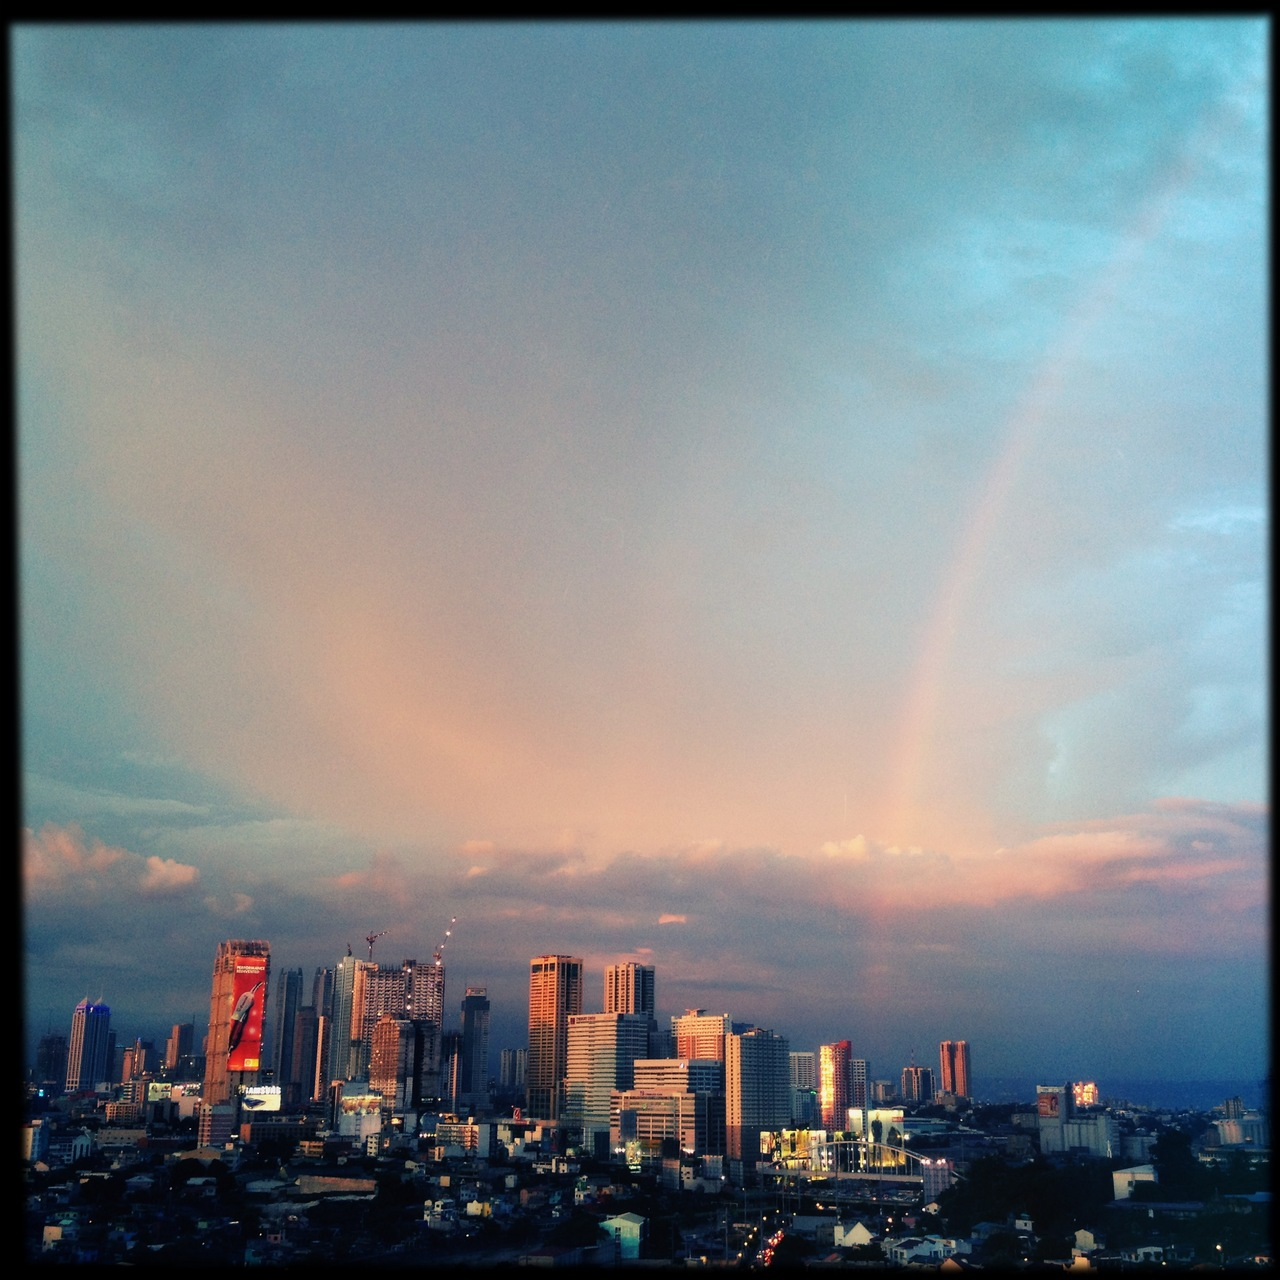 And there was a rainbow for the #comedyking at the end of the day. #RIPDolphy